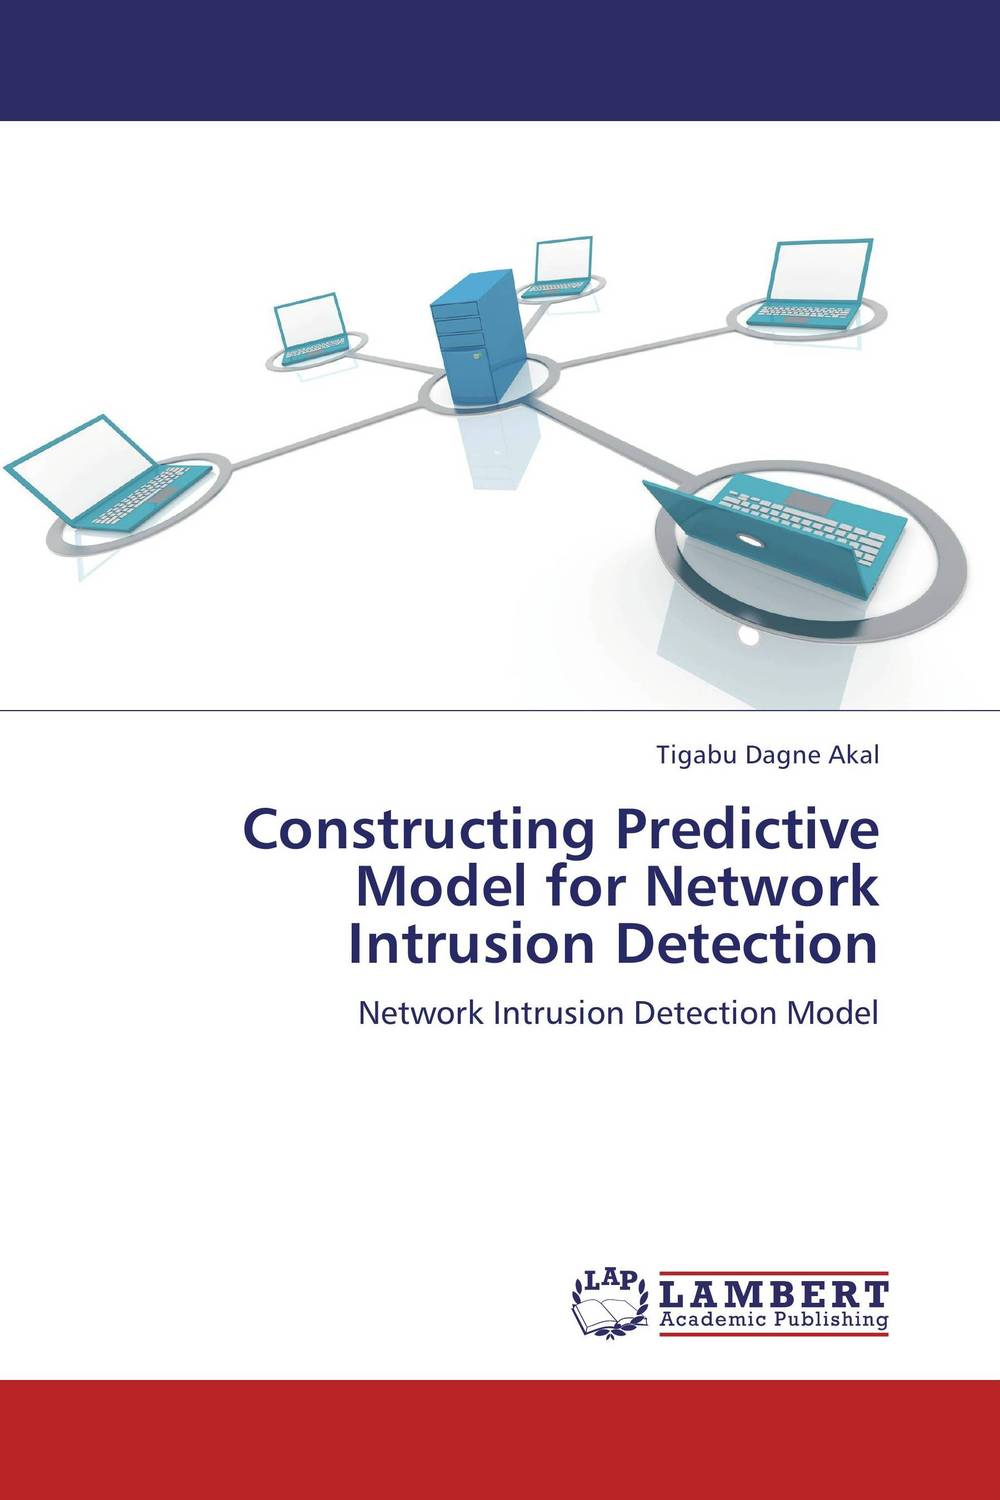 Constructing Predictive Model for Network Intrusion Detection banta trudy w assessment clear and simple a practical guide for institutions departments and general education